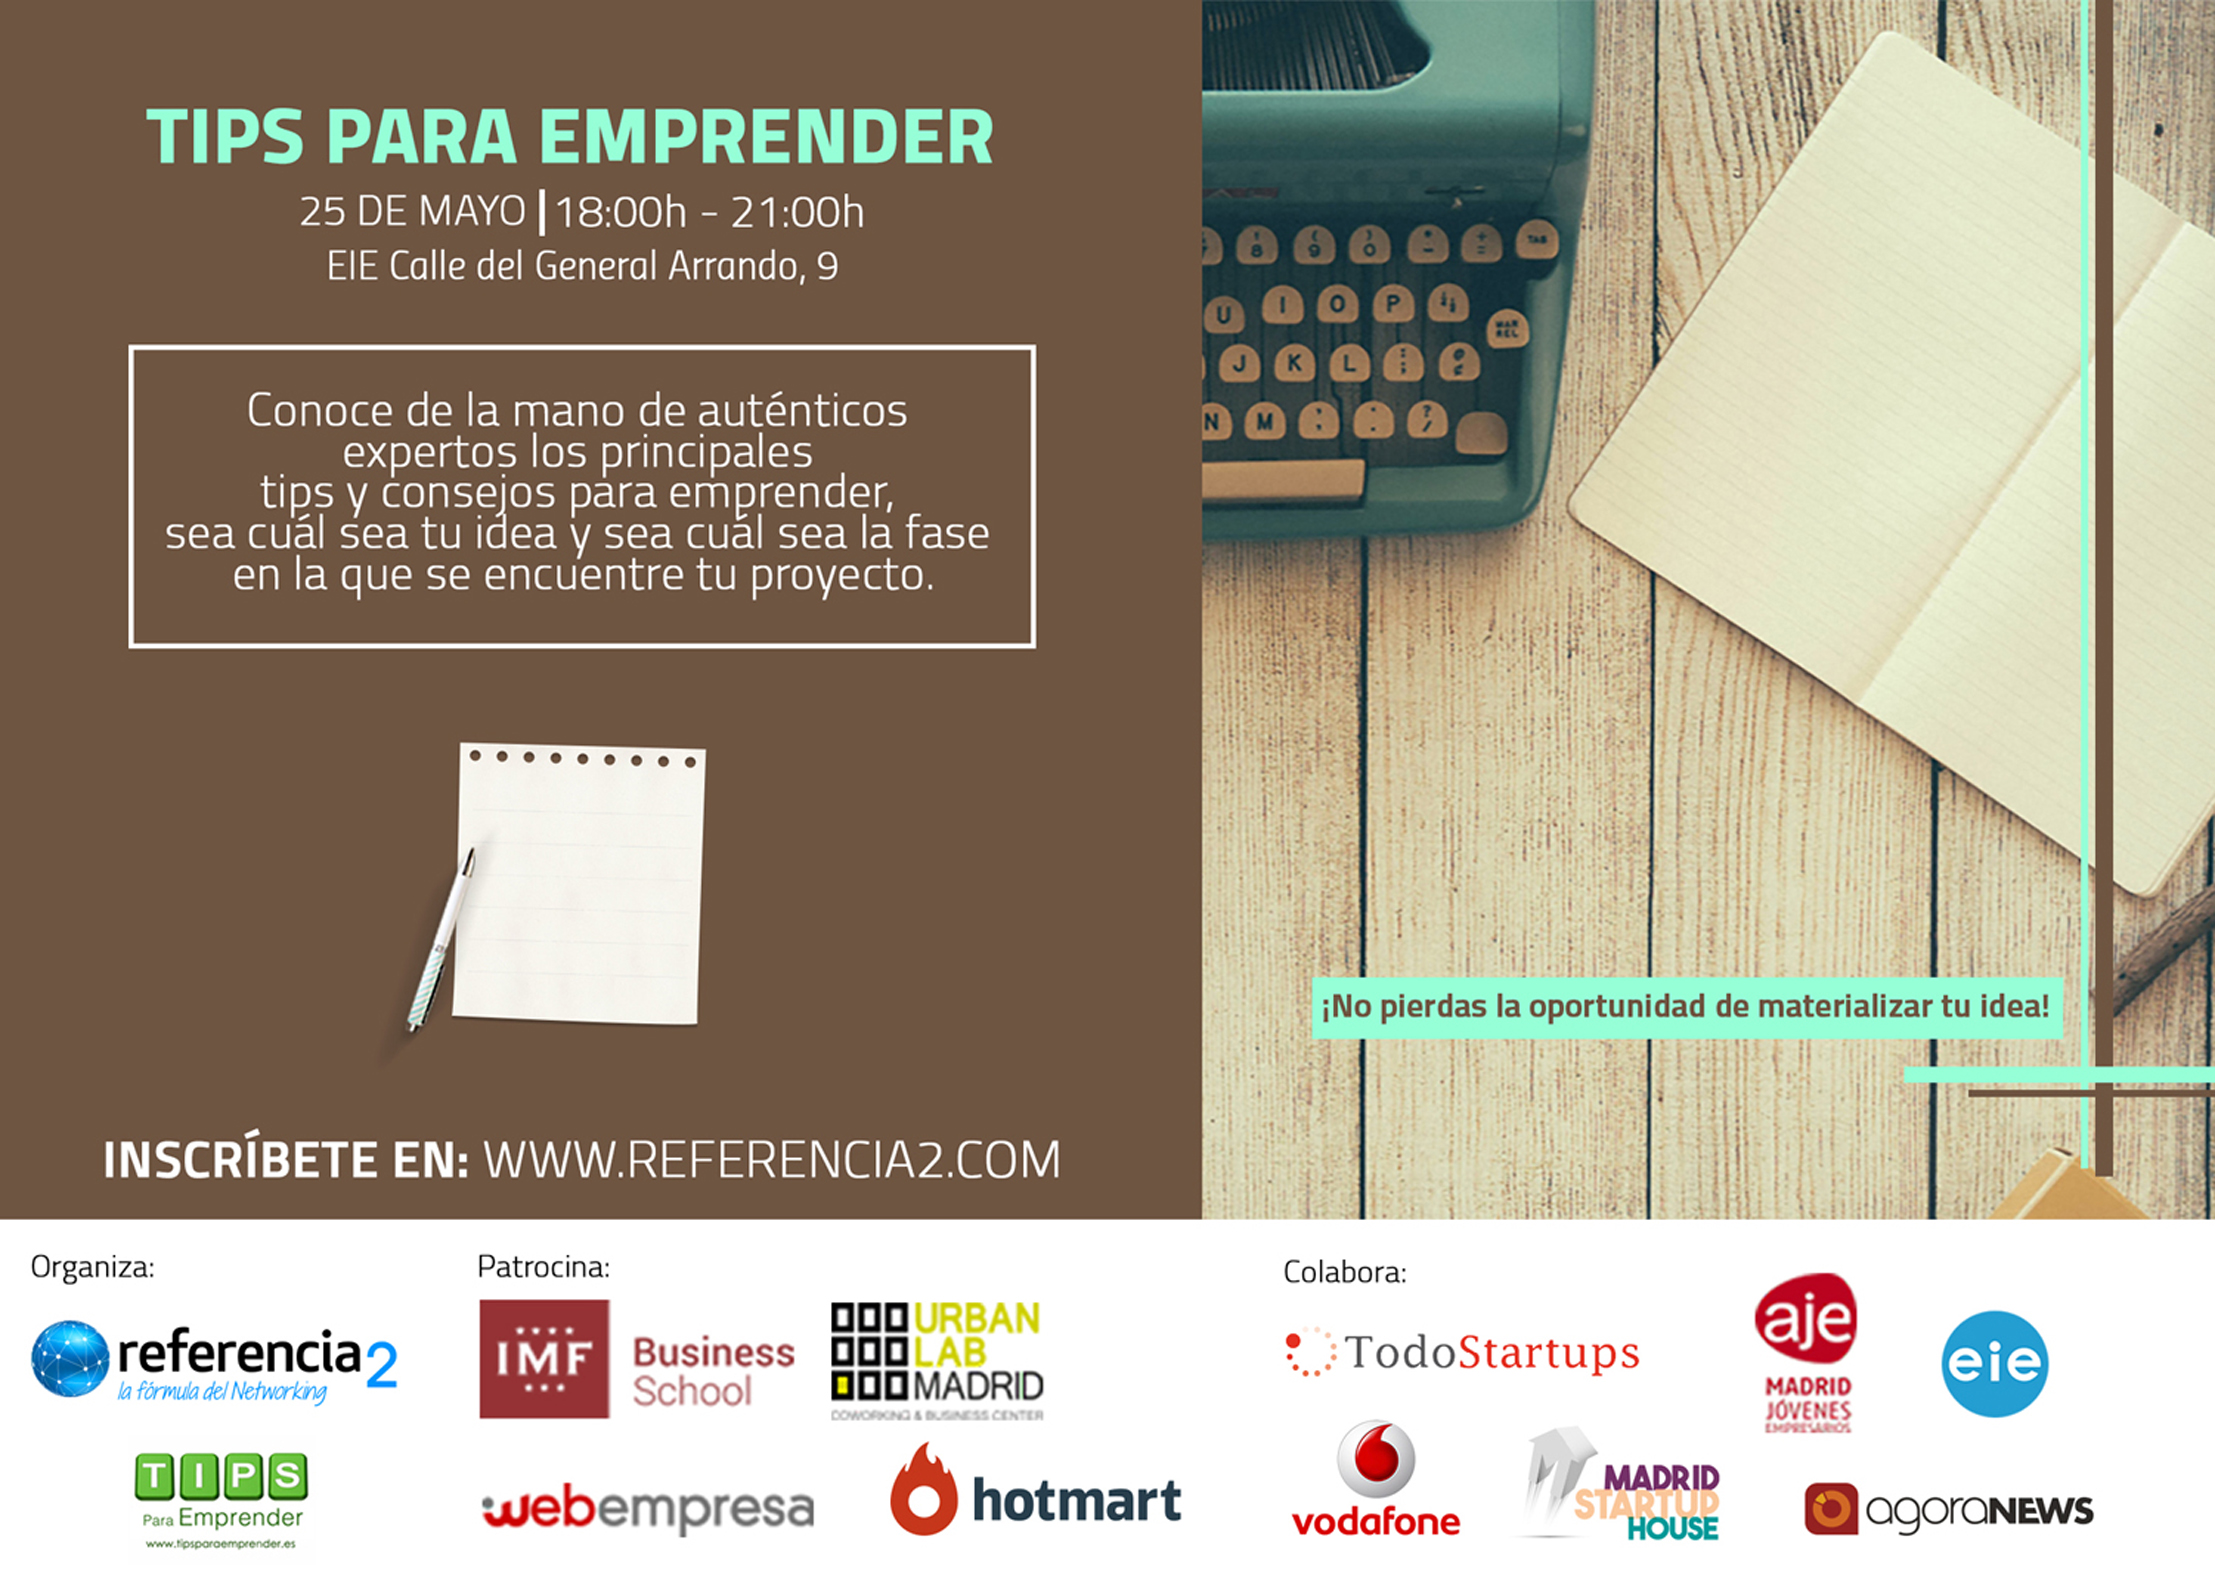 Tips Para Emprender. El evento.